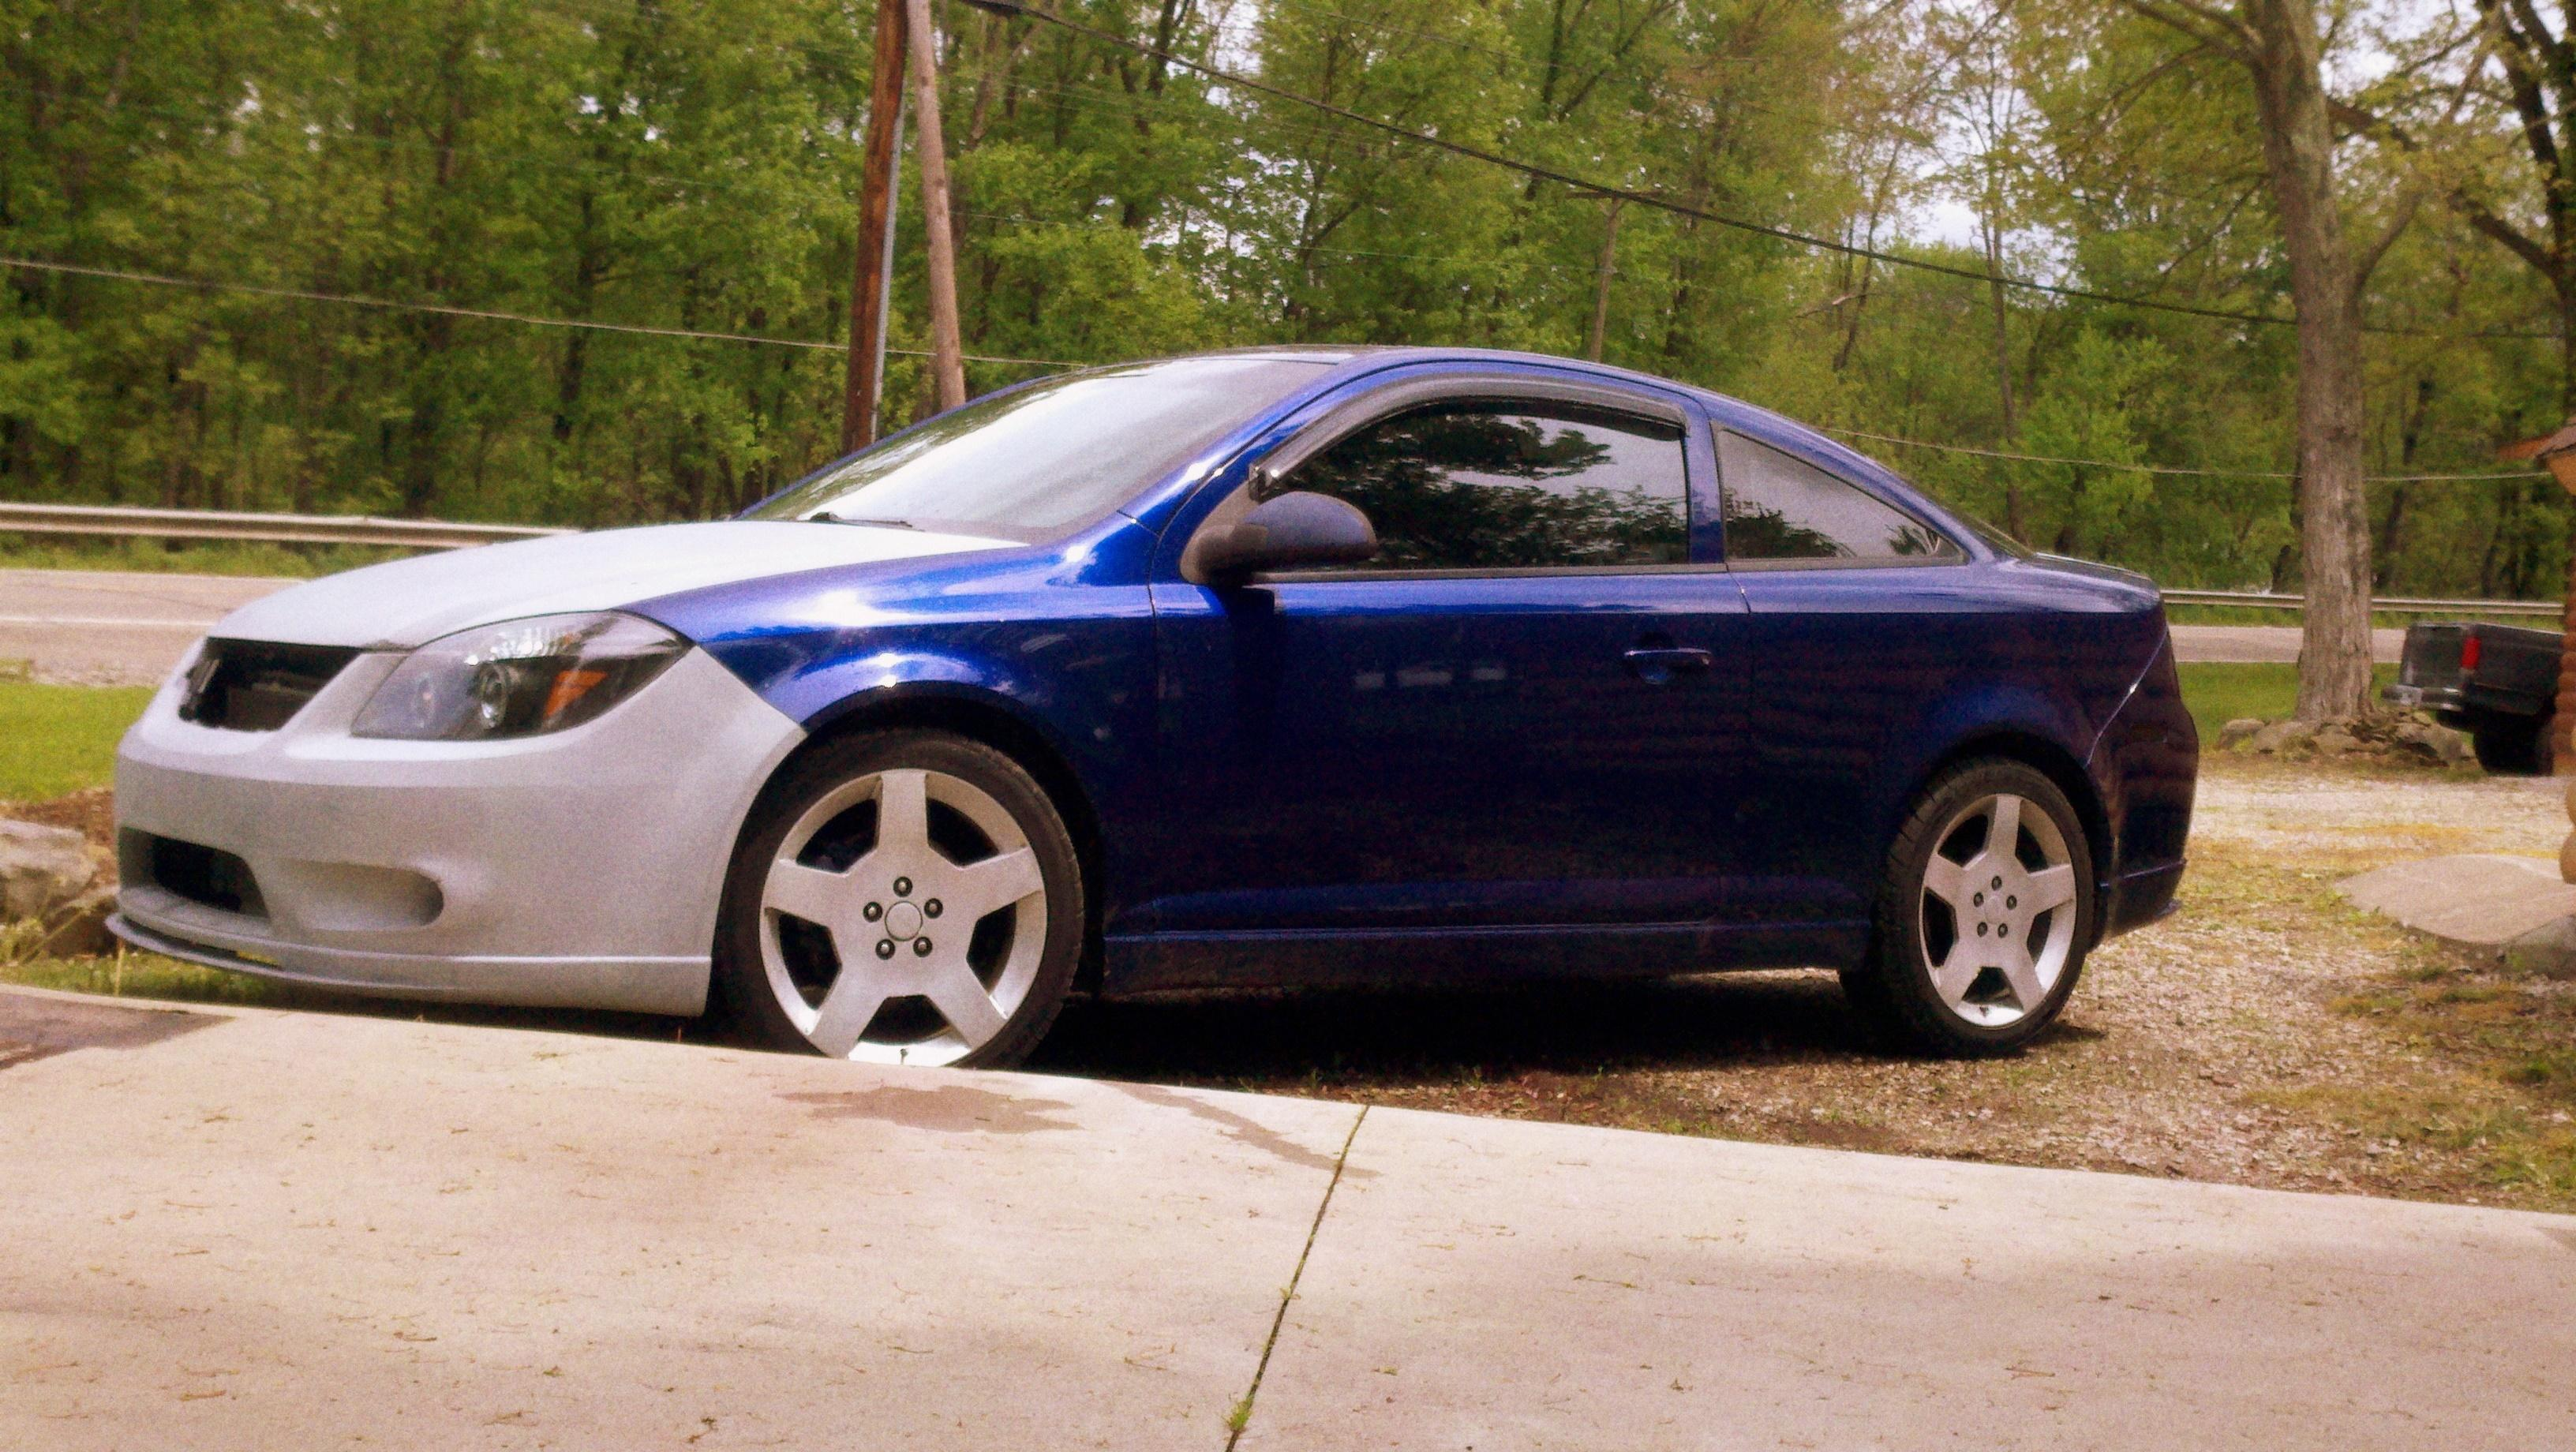 Cobalt Ss Sc 2006 Chevrolet Cobaltss Supercharged Coupe 2d